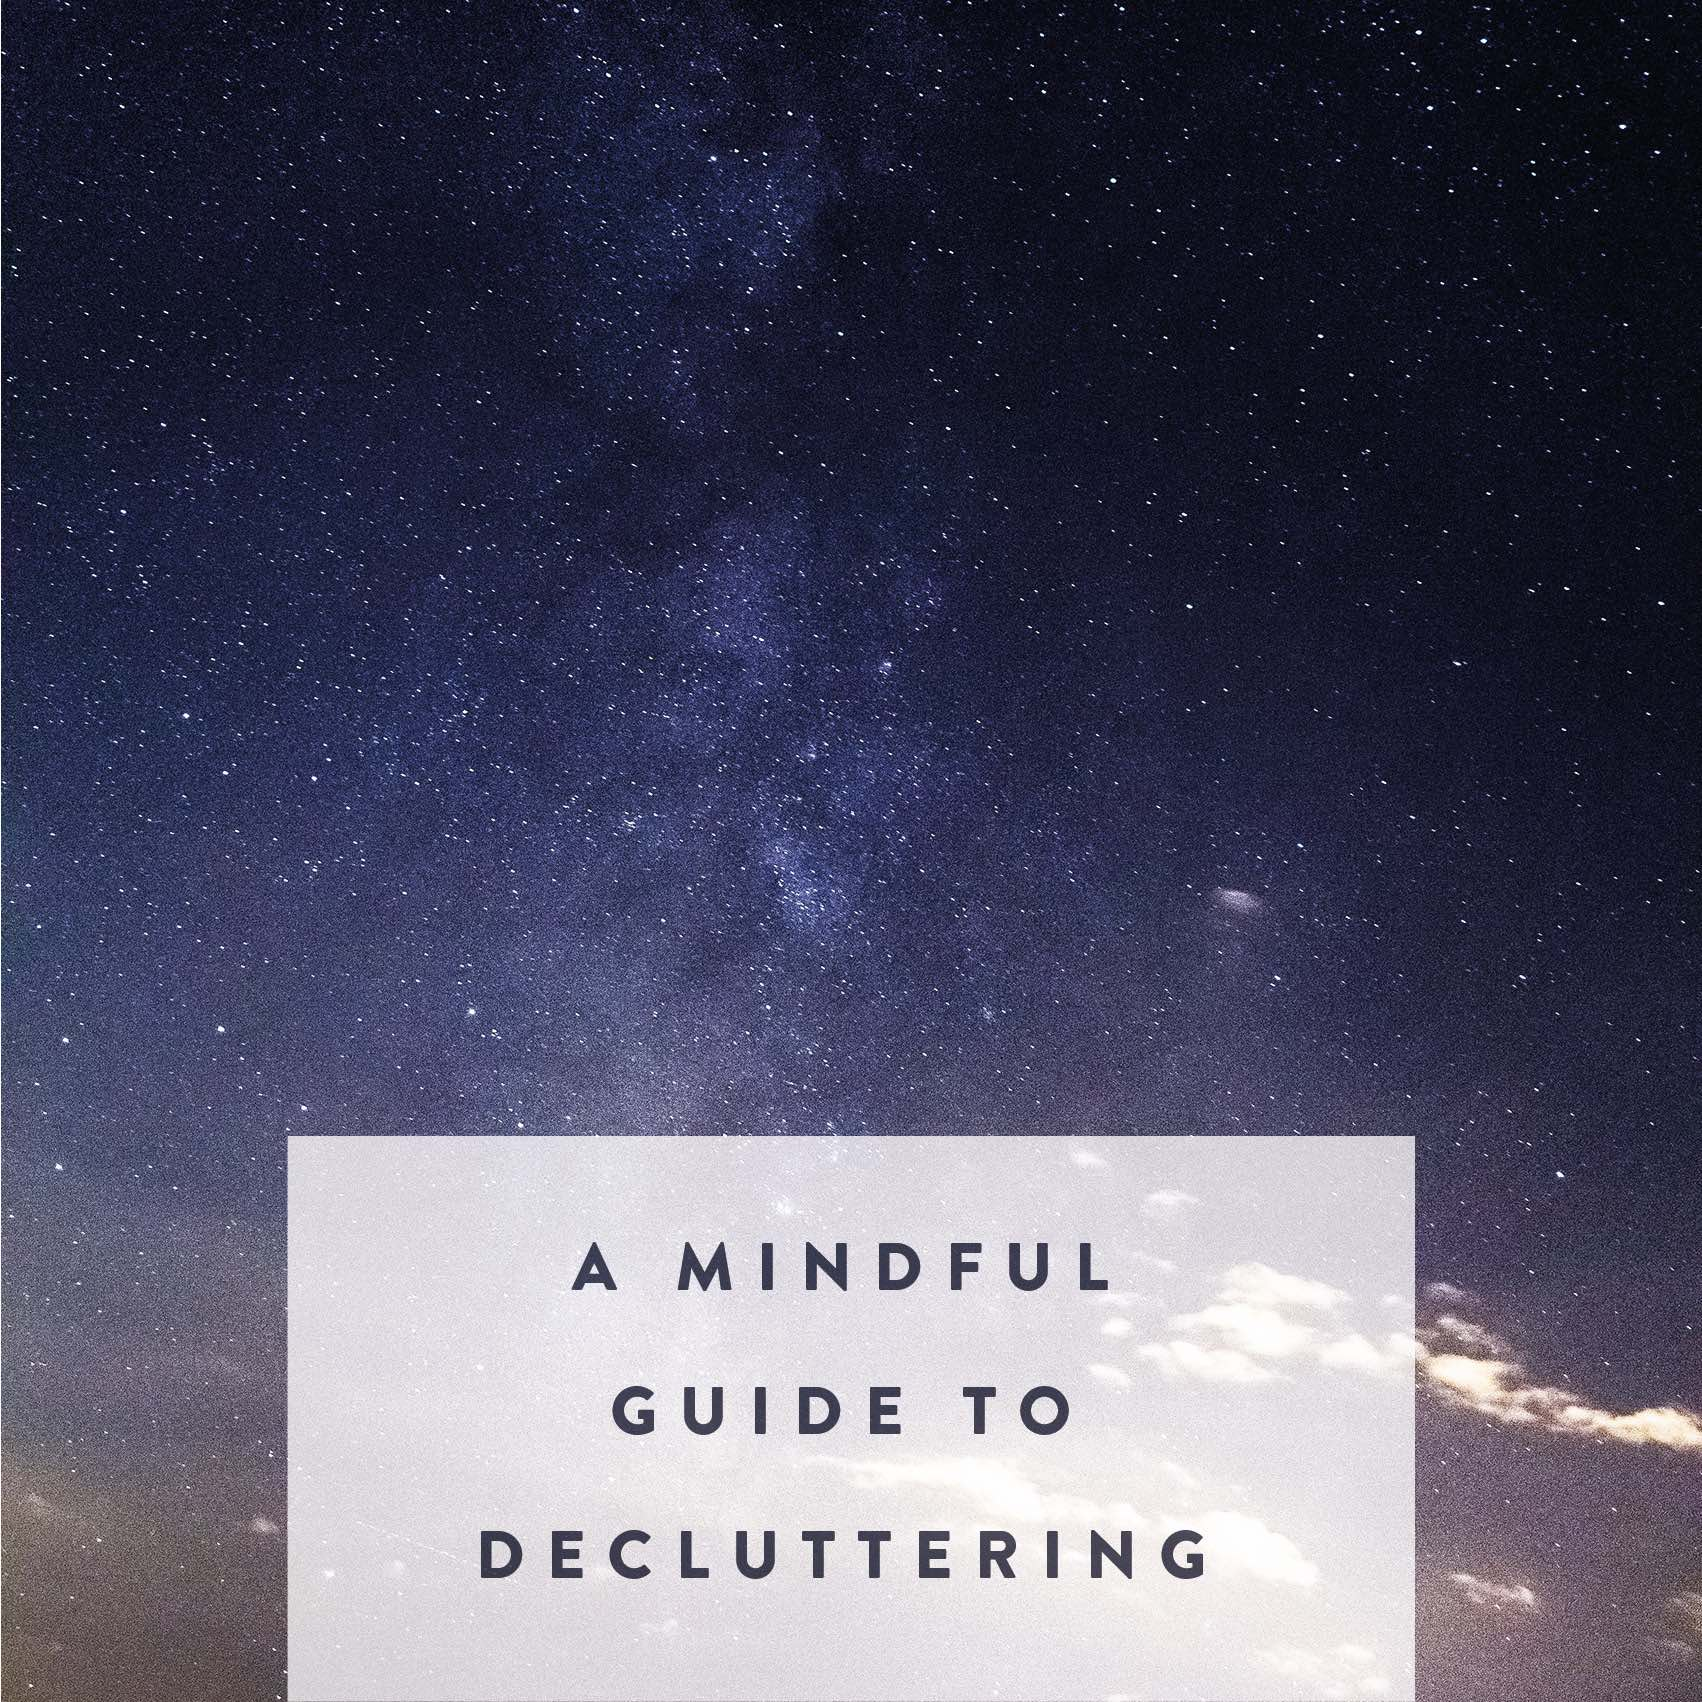 Jo-ChunYan-Mindful Guide To Decluttering